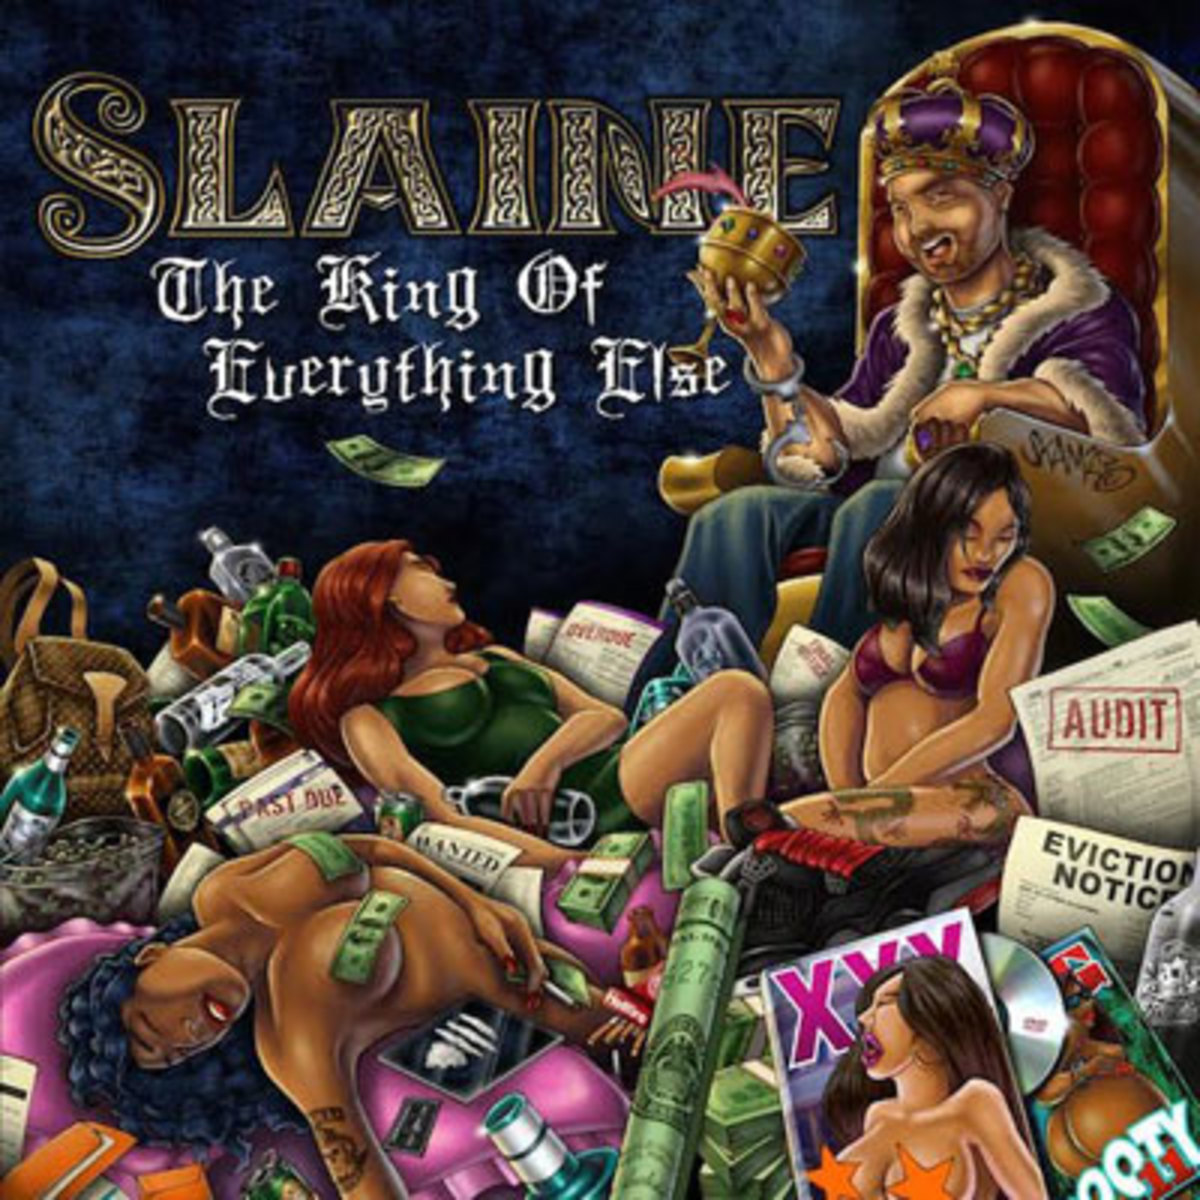 slaine-kingeverything.jpg